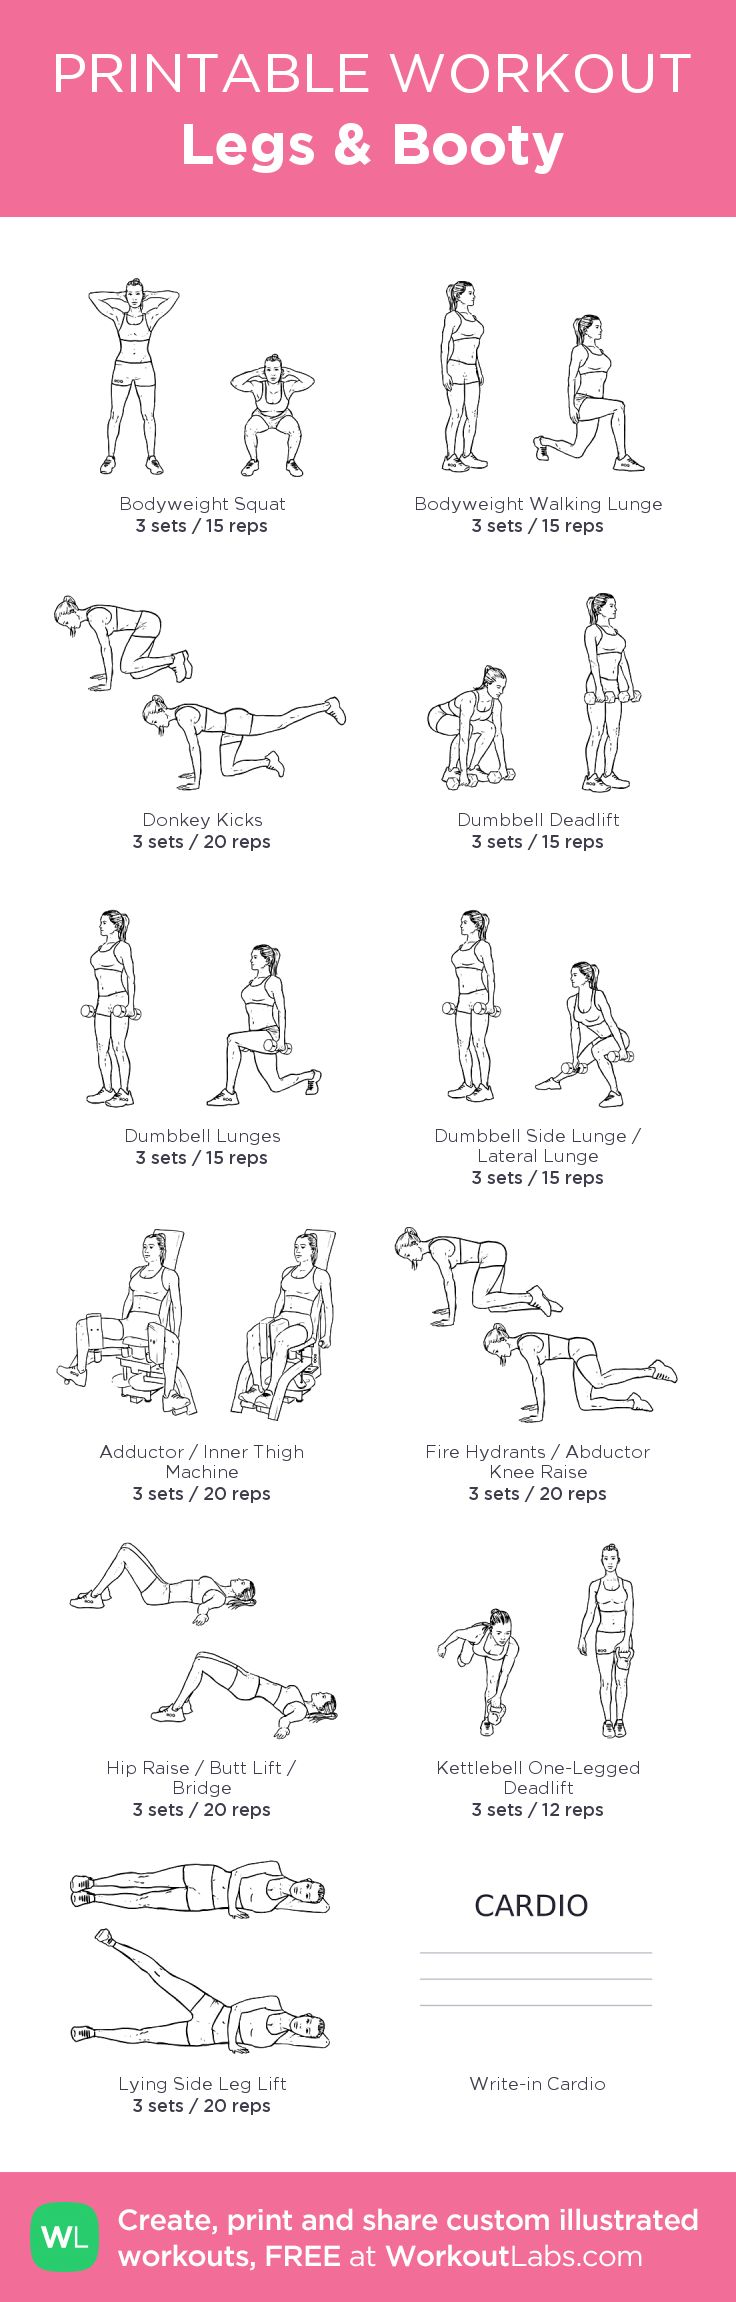 Legs & Booty: my visual workout created at WorkoutLabs.com • Click through to customize and download as a FREE PDF! #customworkout